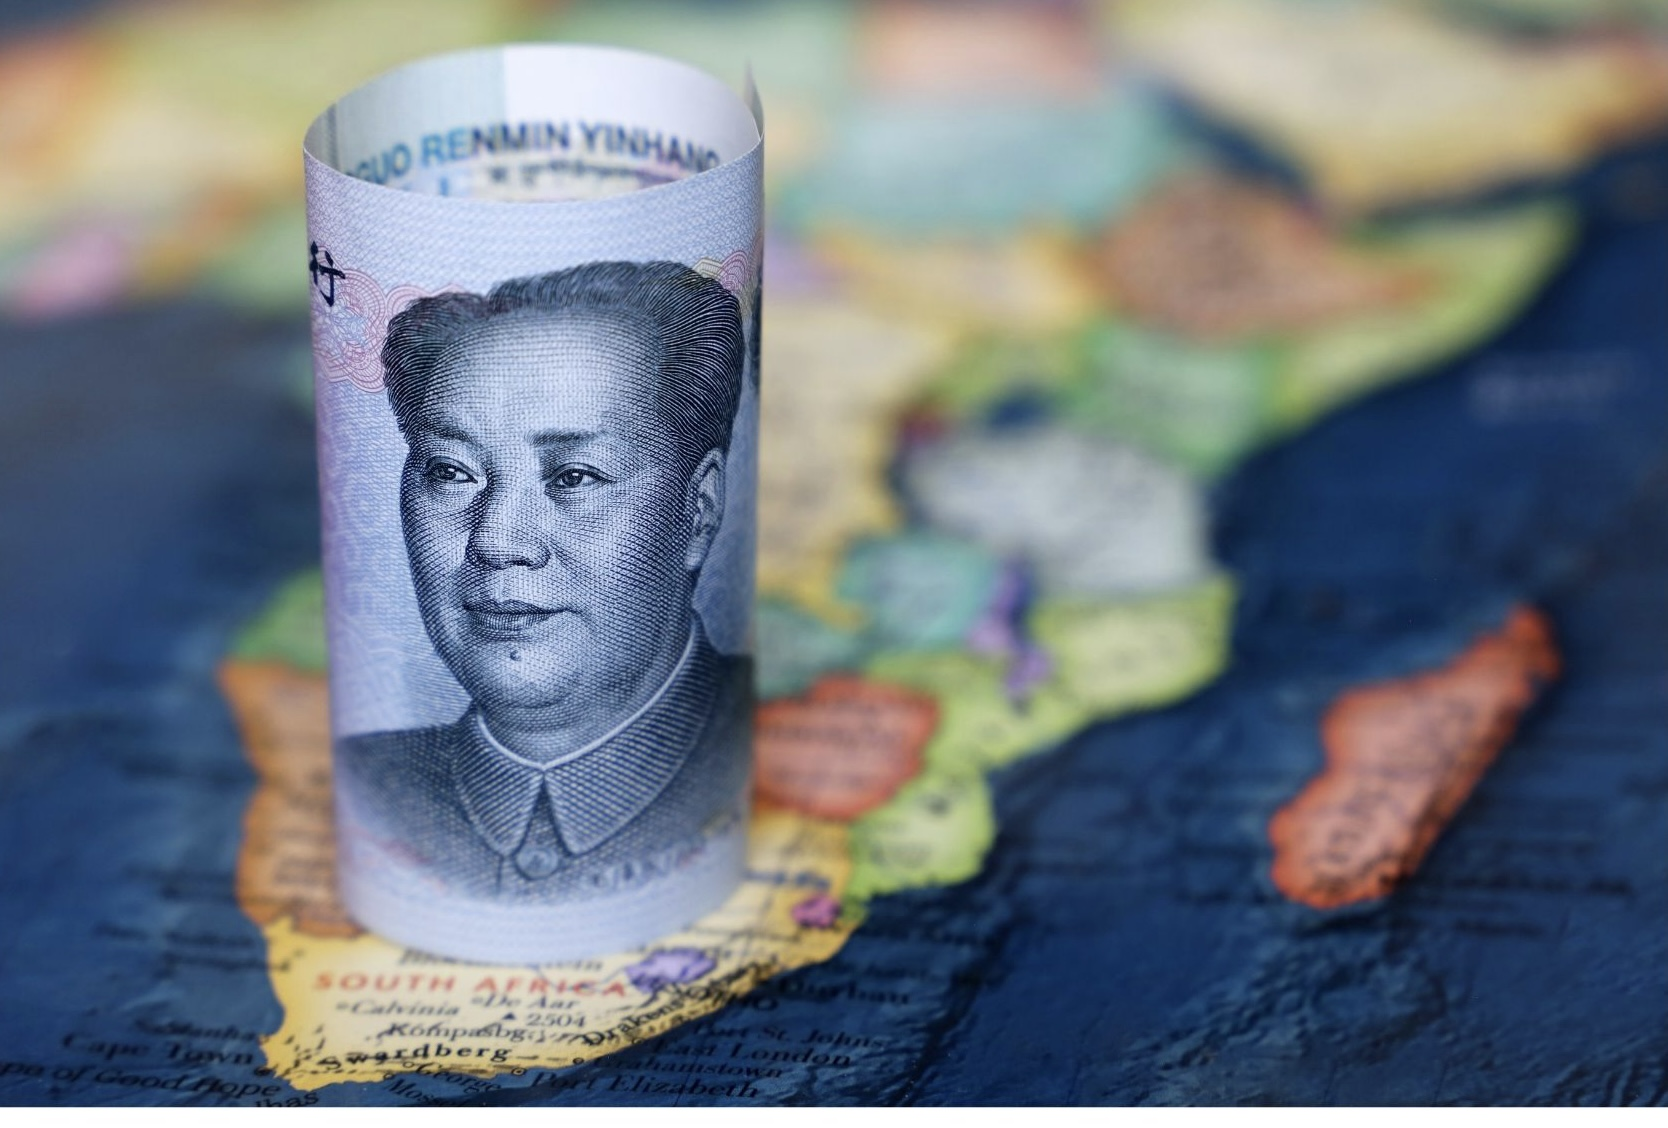 The growing influence of China in Africa